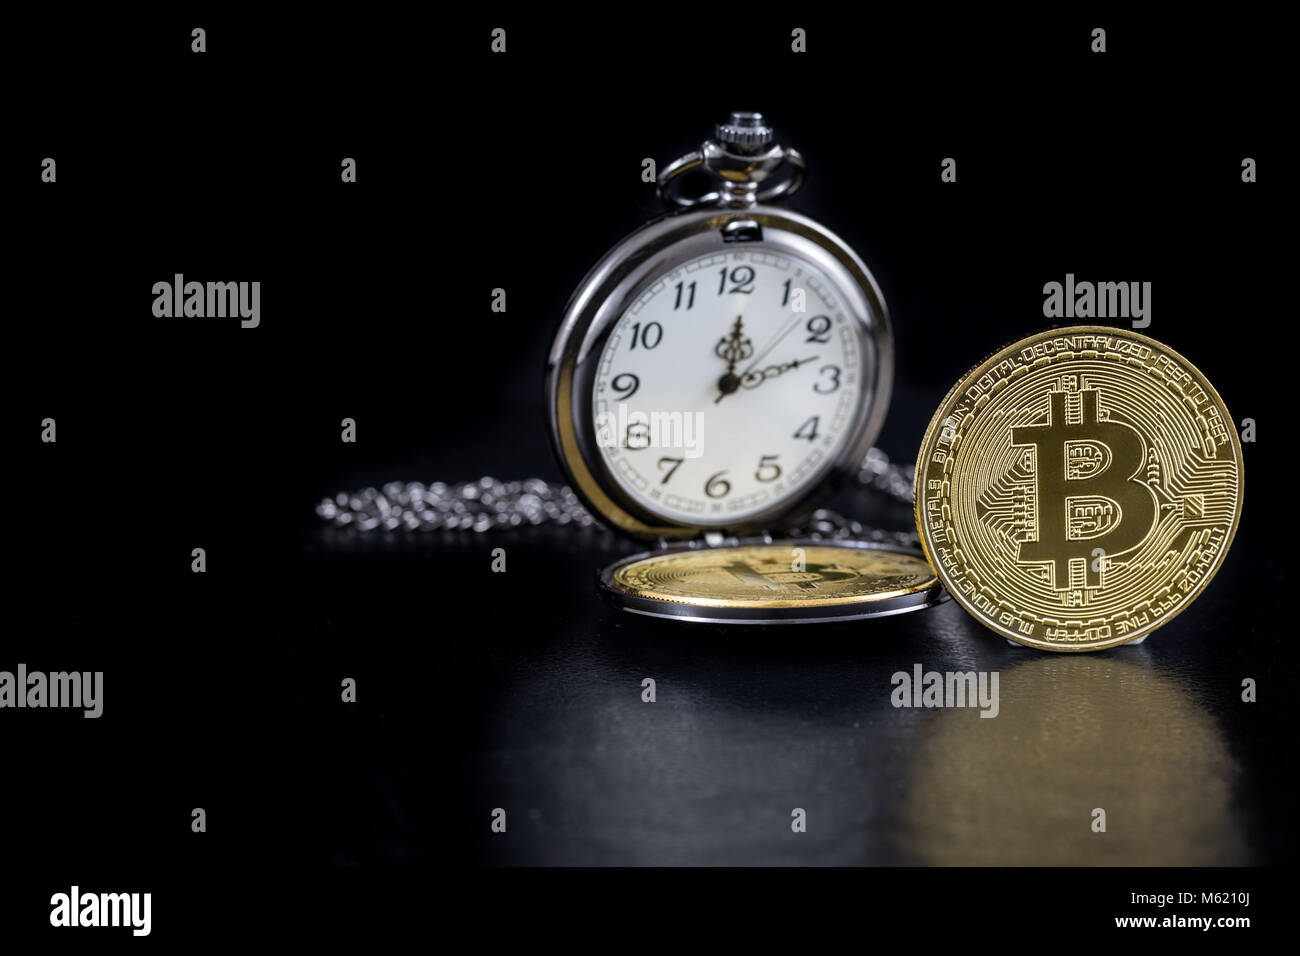 Single golden bitcoin and pocket watch on black background - Stock Image